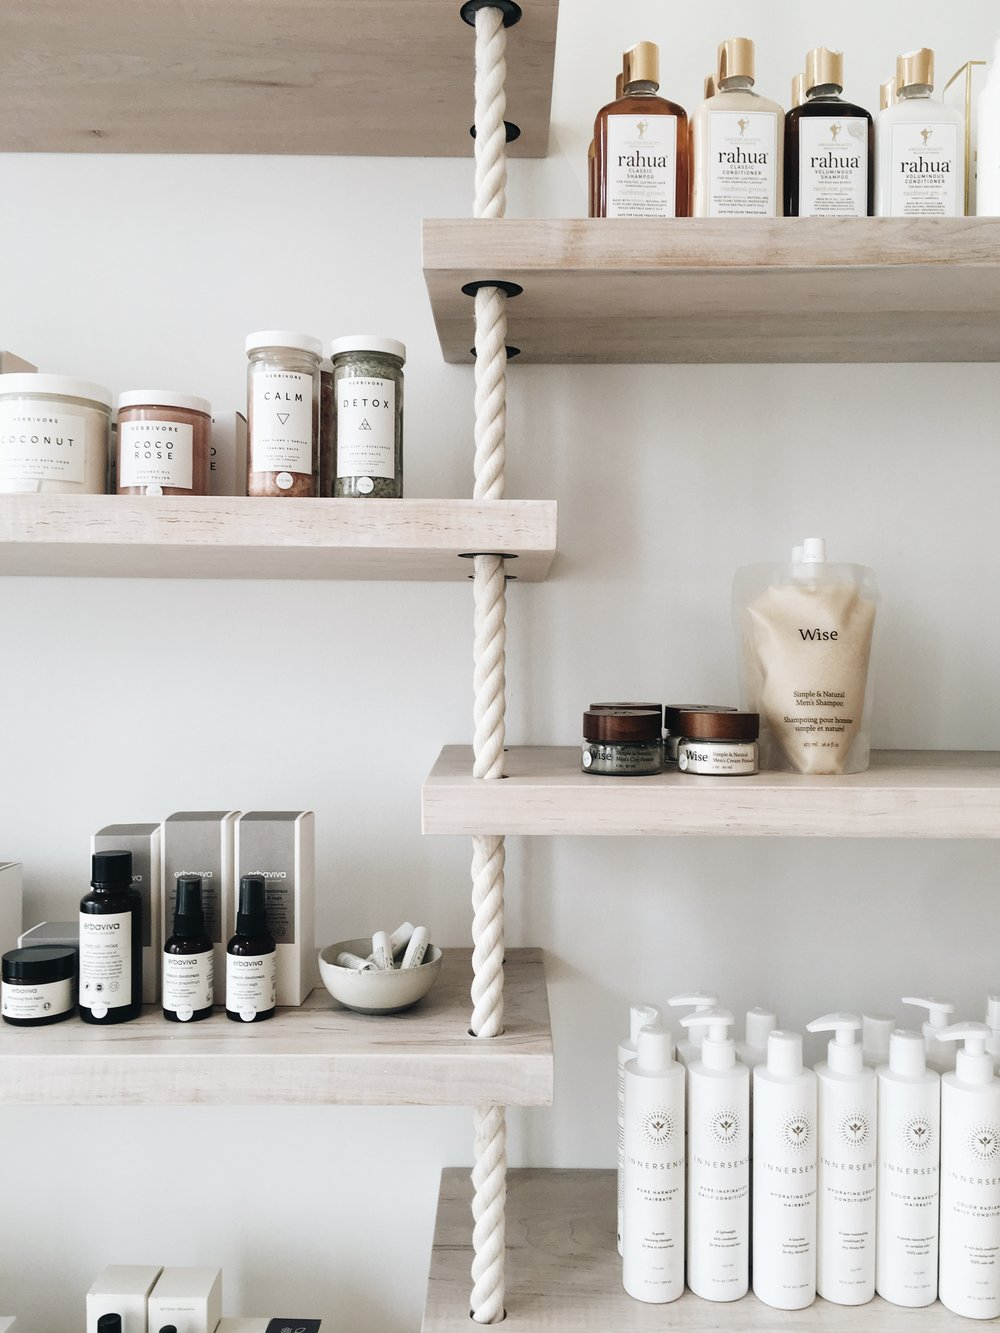 A shelf filled with skincare products